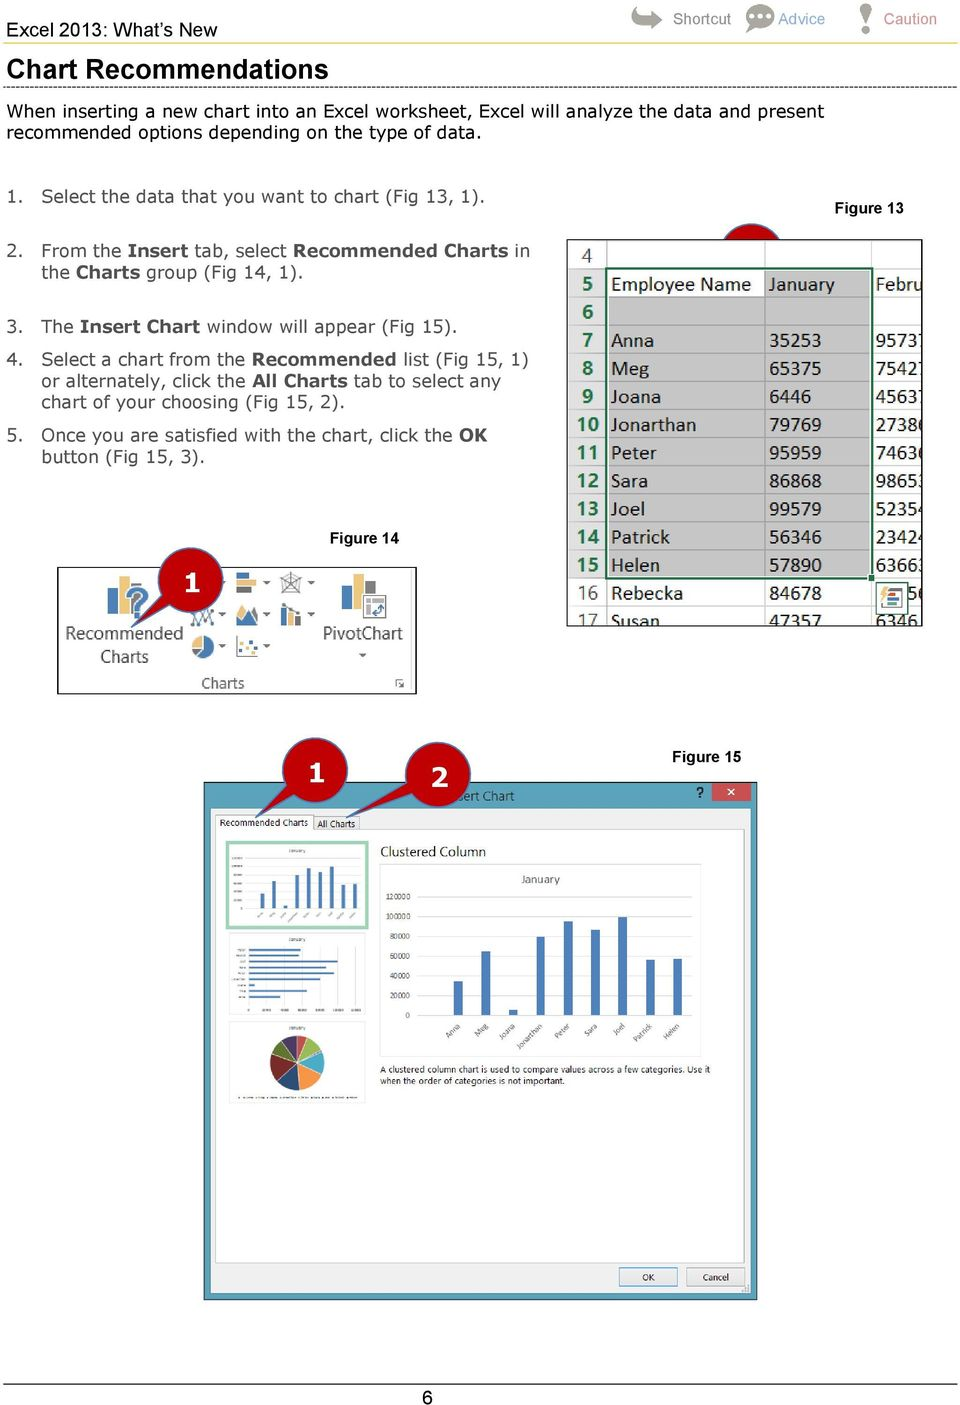 From the Insert tab, select Recommended Charts in the Charts group (Fig 4,